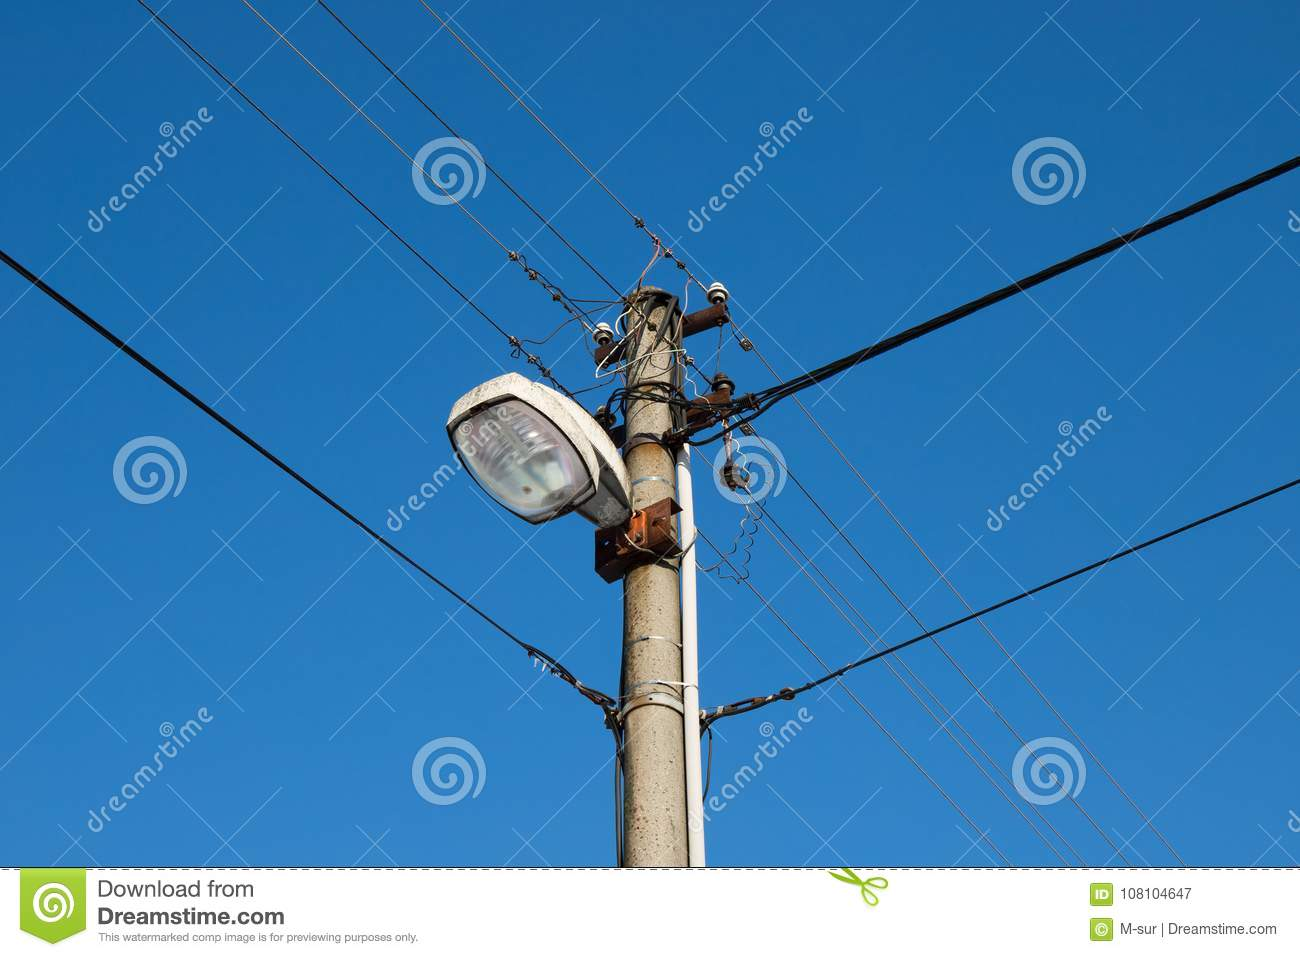 Retro Street Lamp. Light For Public Spaces. Stock Image - Image of ...